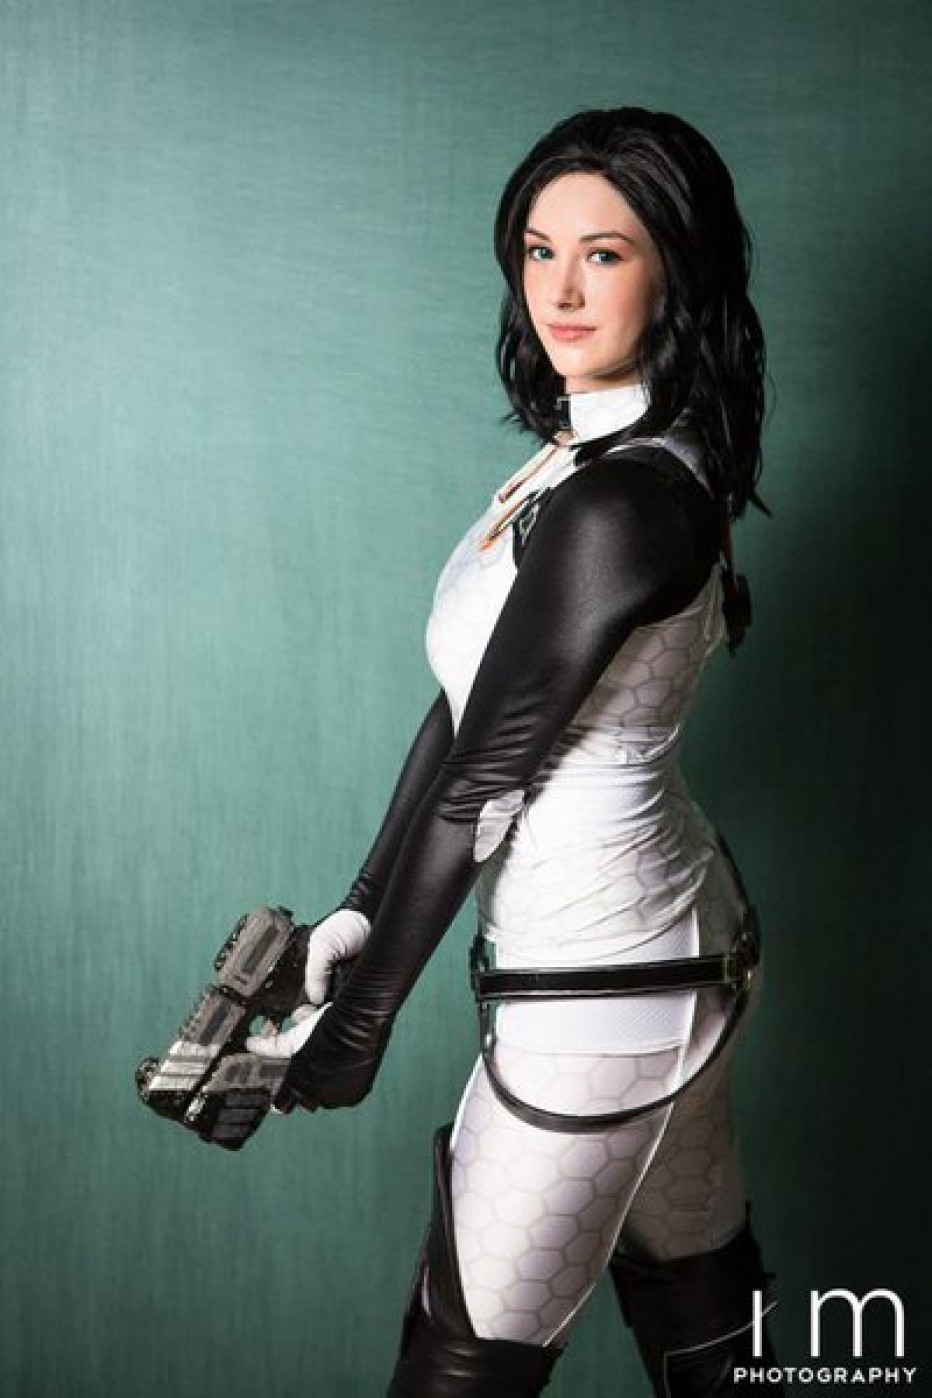 Mass-Effect-Miranda-Lawson-Cosplay-Gamers-Heroes-3.jpg